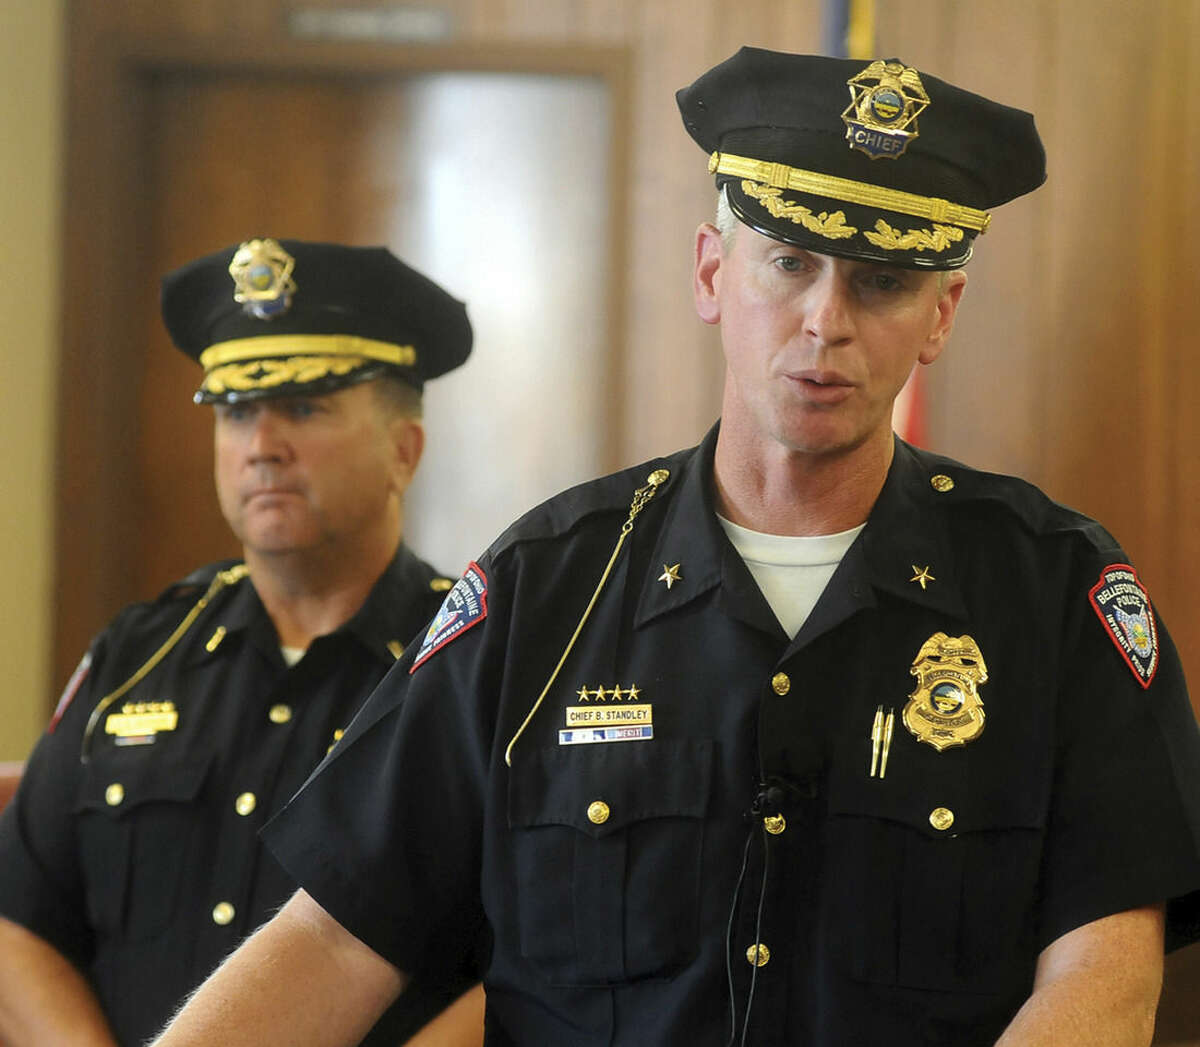 In this Tuesday, Aug. 18, 2015, photo, Bellefontaine Police Chief Brandon Standley, front, and Lt. Rick Herring host a news conference, in Bellefontaine, Ohio, to announce charges against Brittany Pilkington. Pilkington was charged with three counts of murder and was jailed, after authorities said she confessed to killing her three young sons. (Reuben Mees/Bellefontaine Examiner via AP) MANDATORY CREDIT